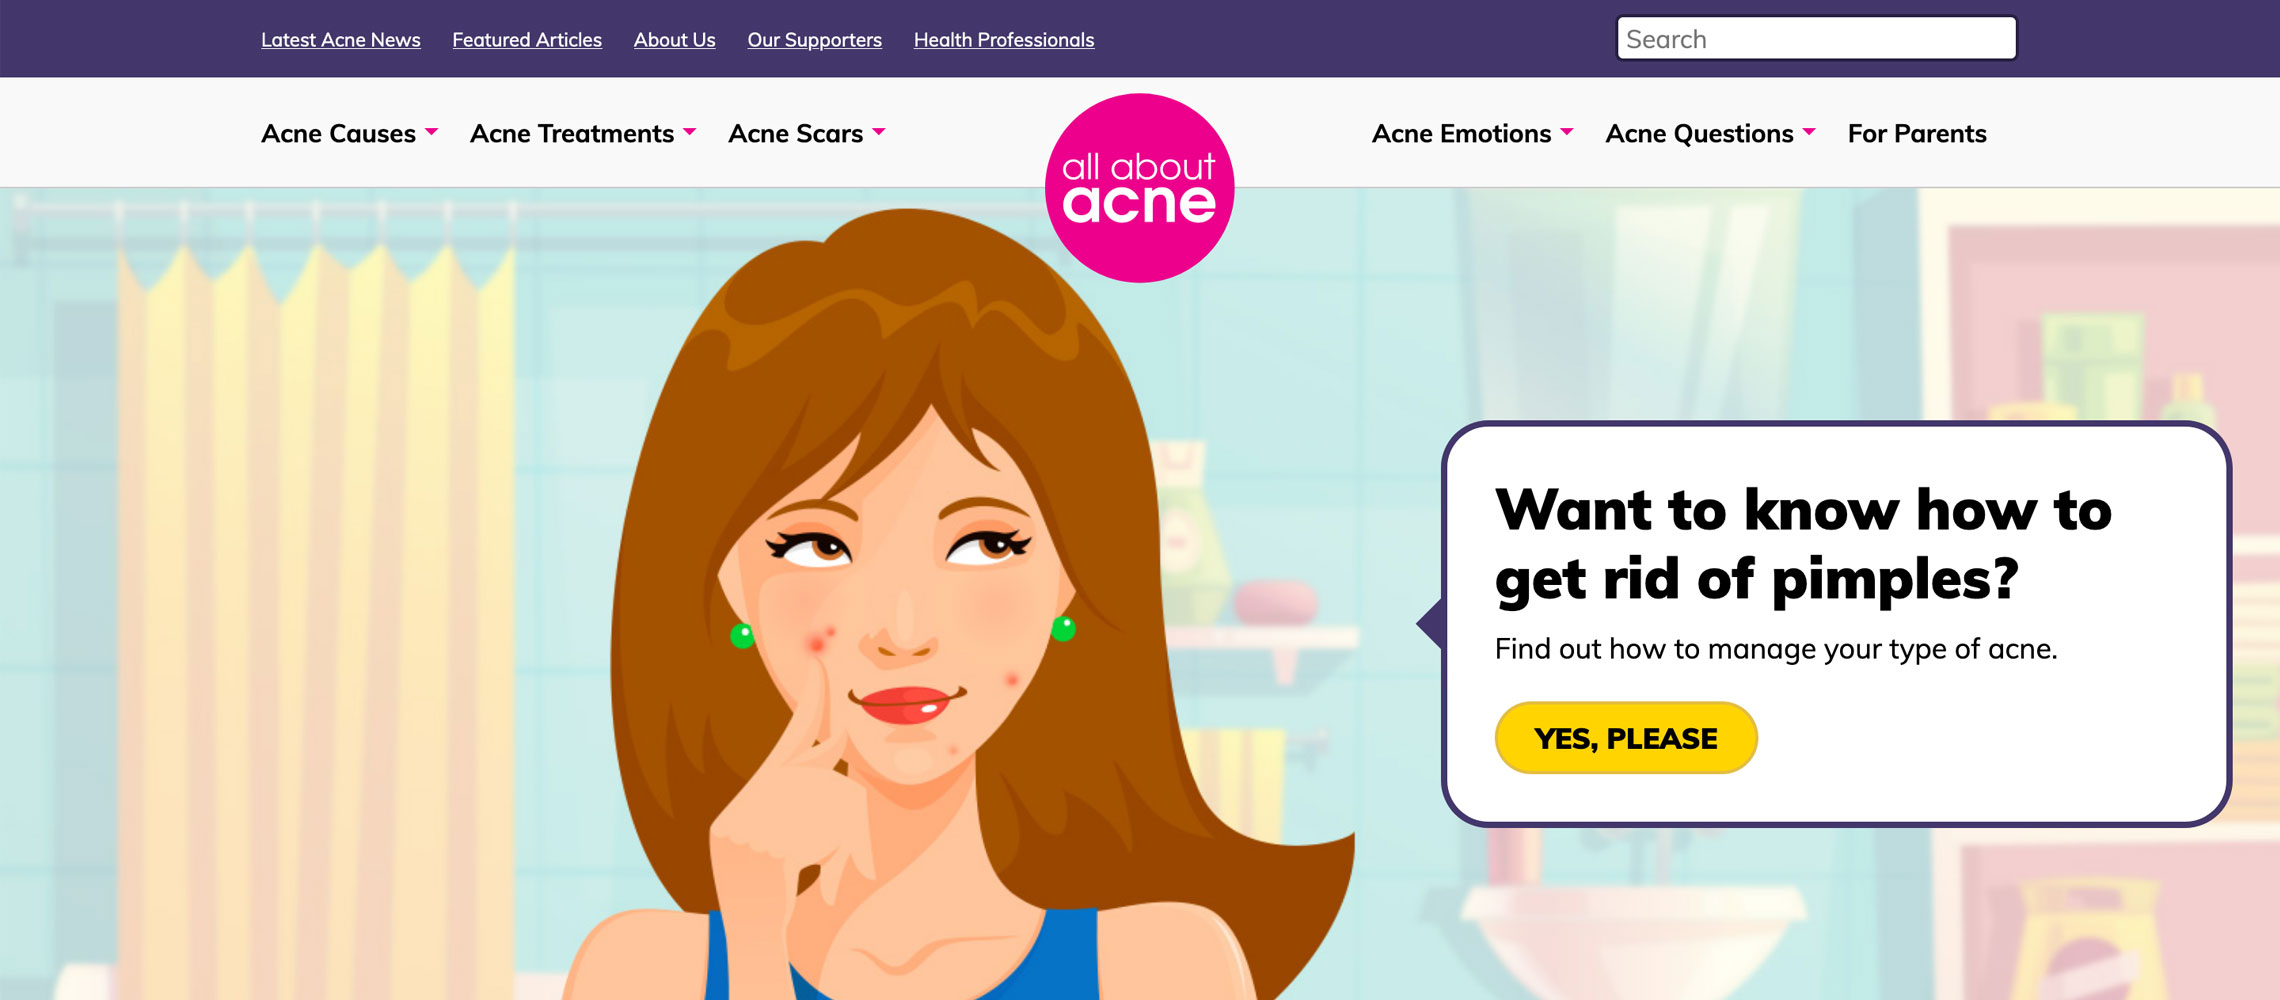 All About Acne